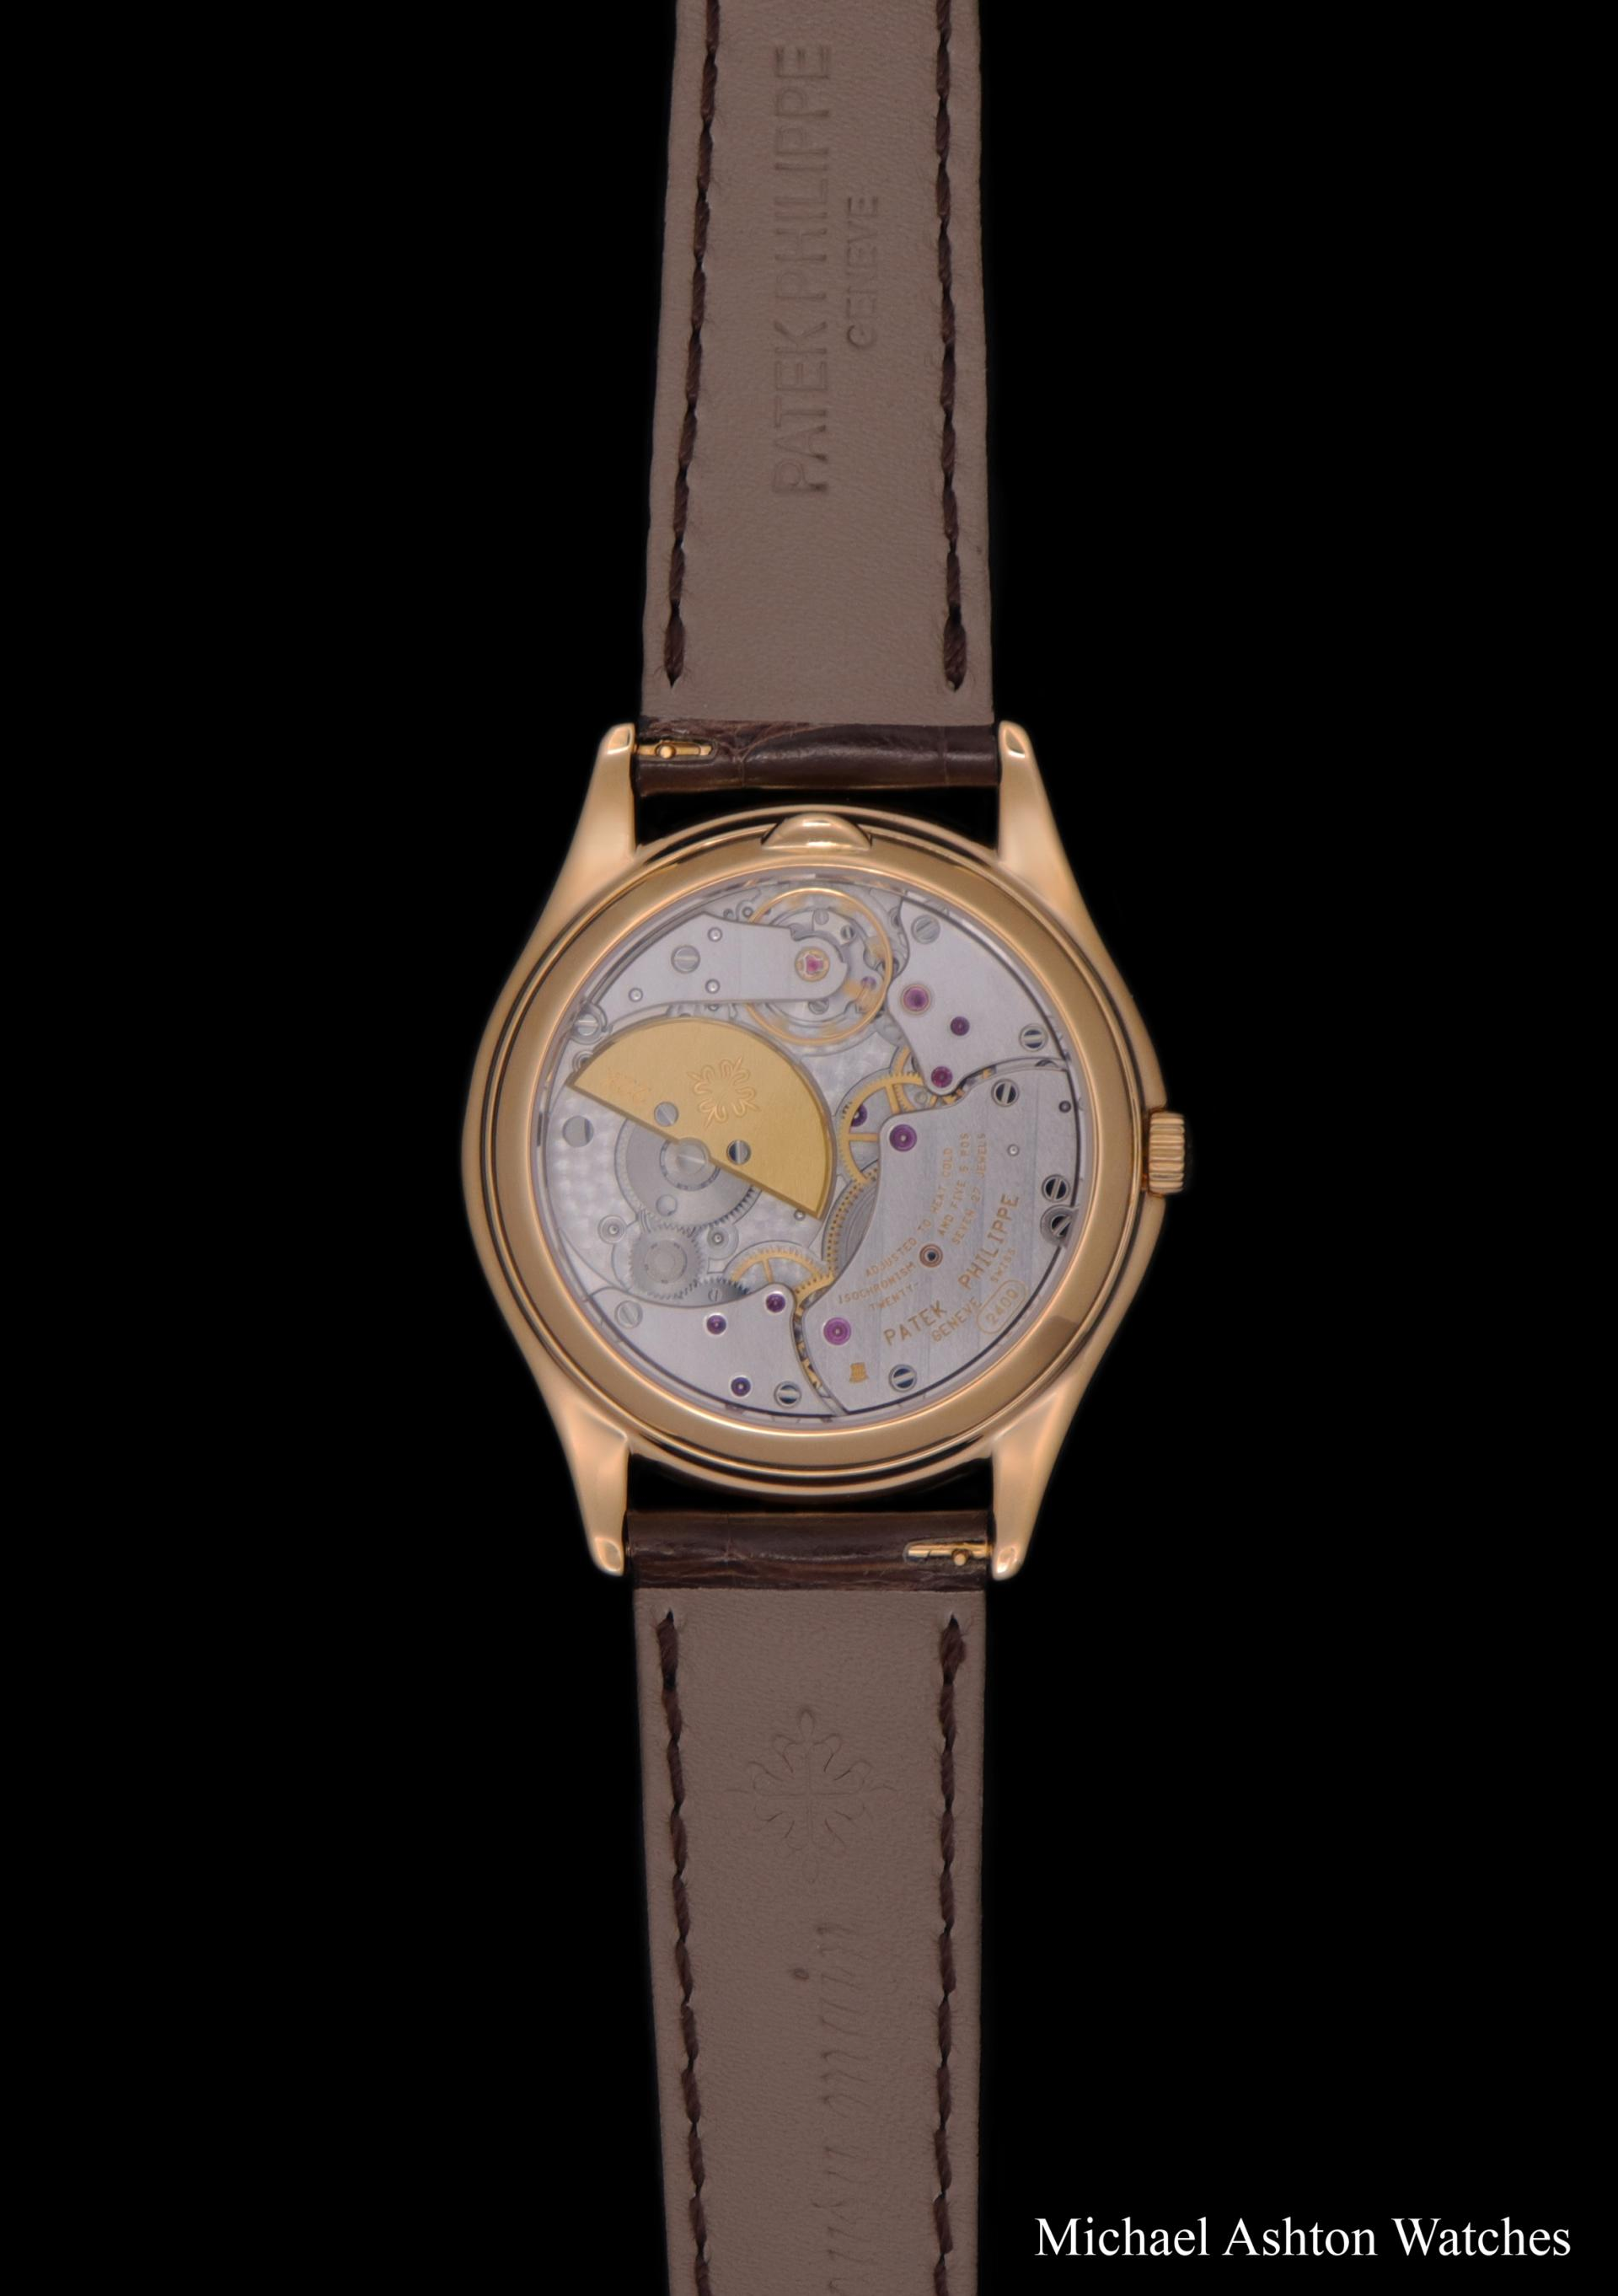 Patek Philippe Factory Serviced